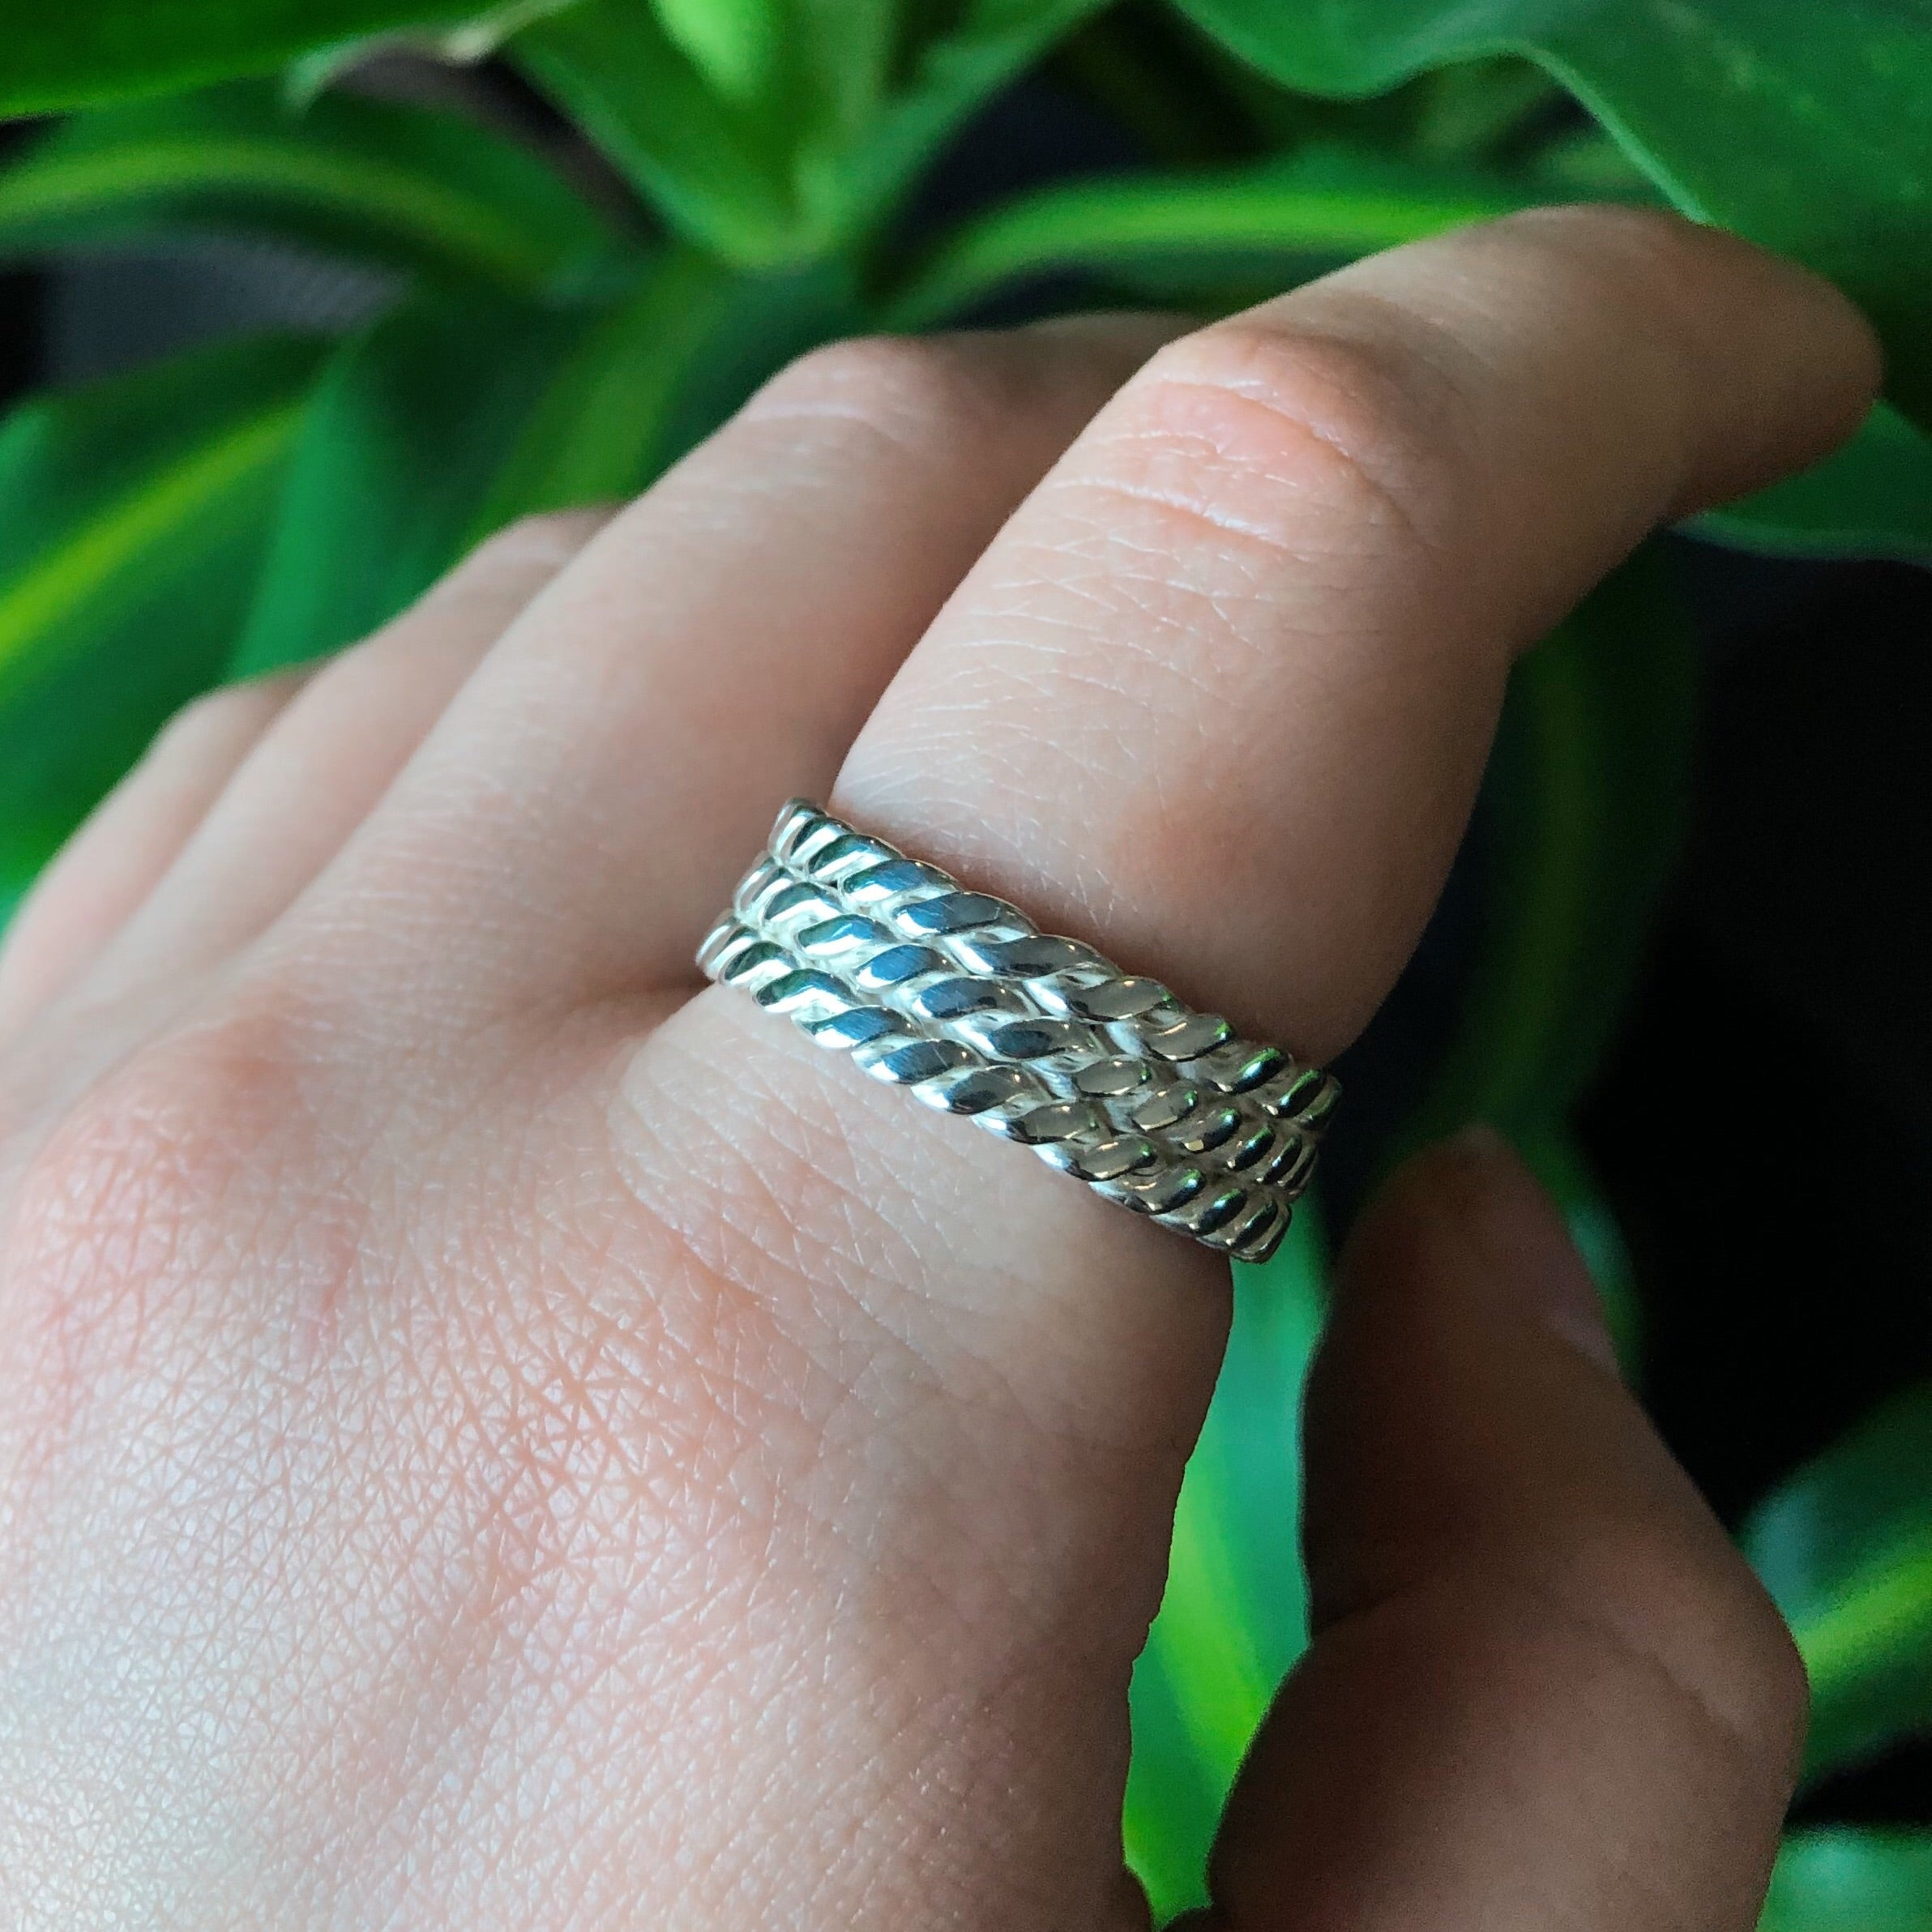 Bound IIl Ring - Silver or Gold -  The Serpents Club